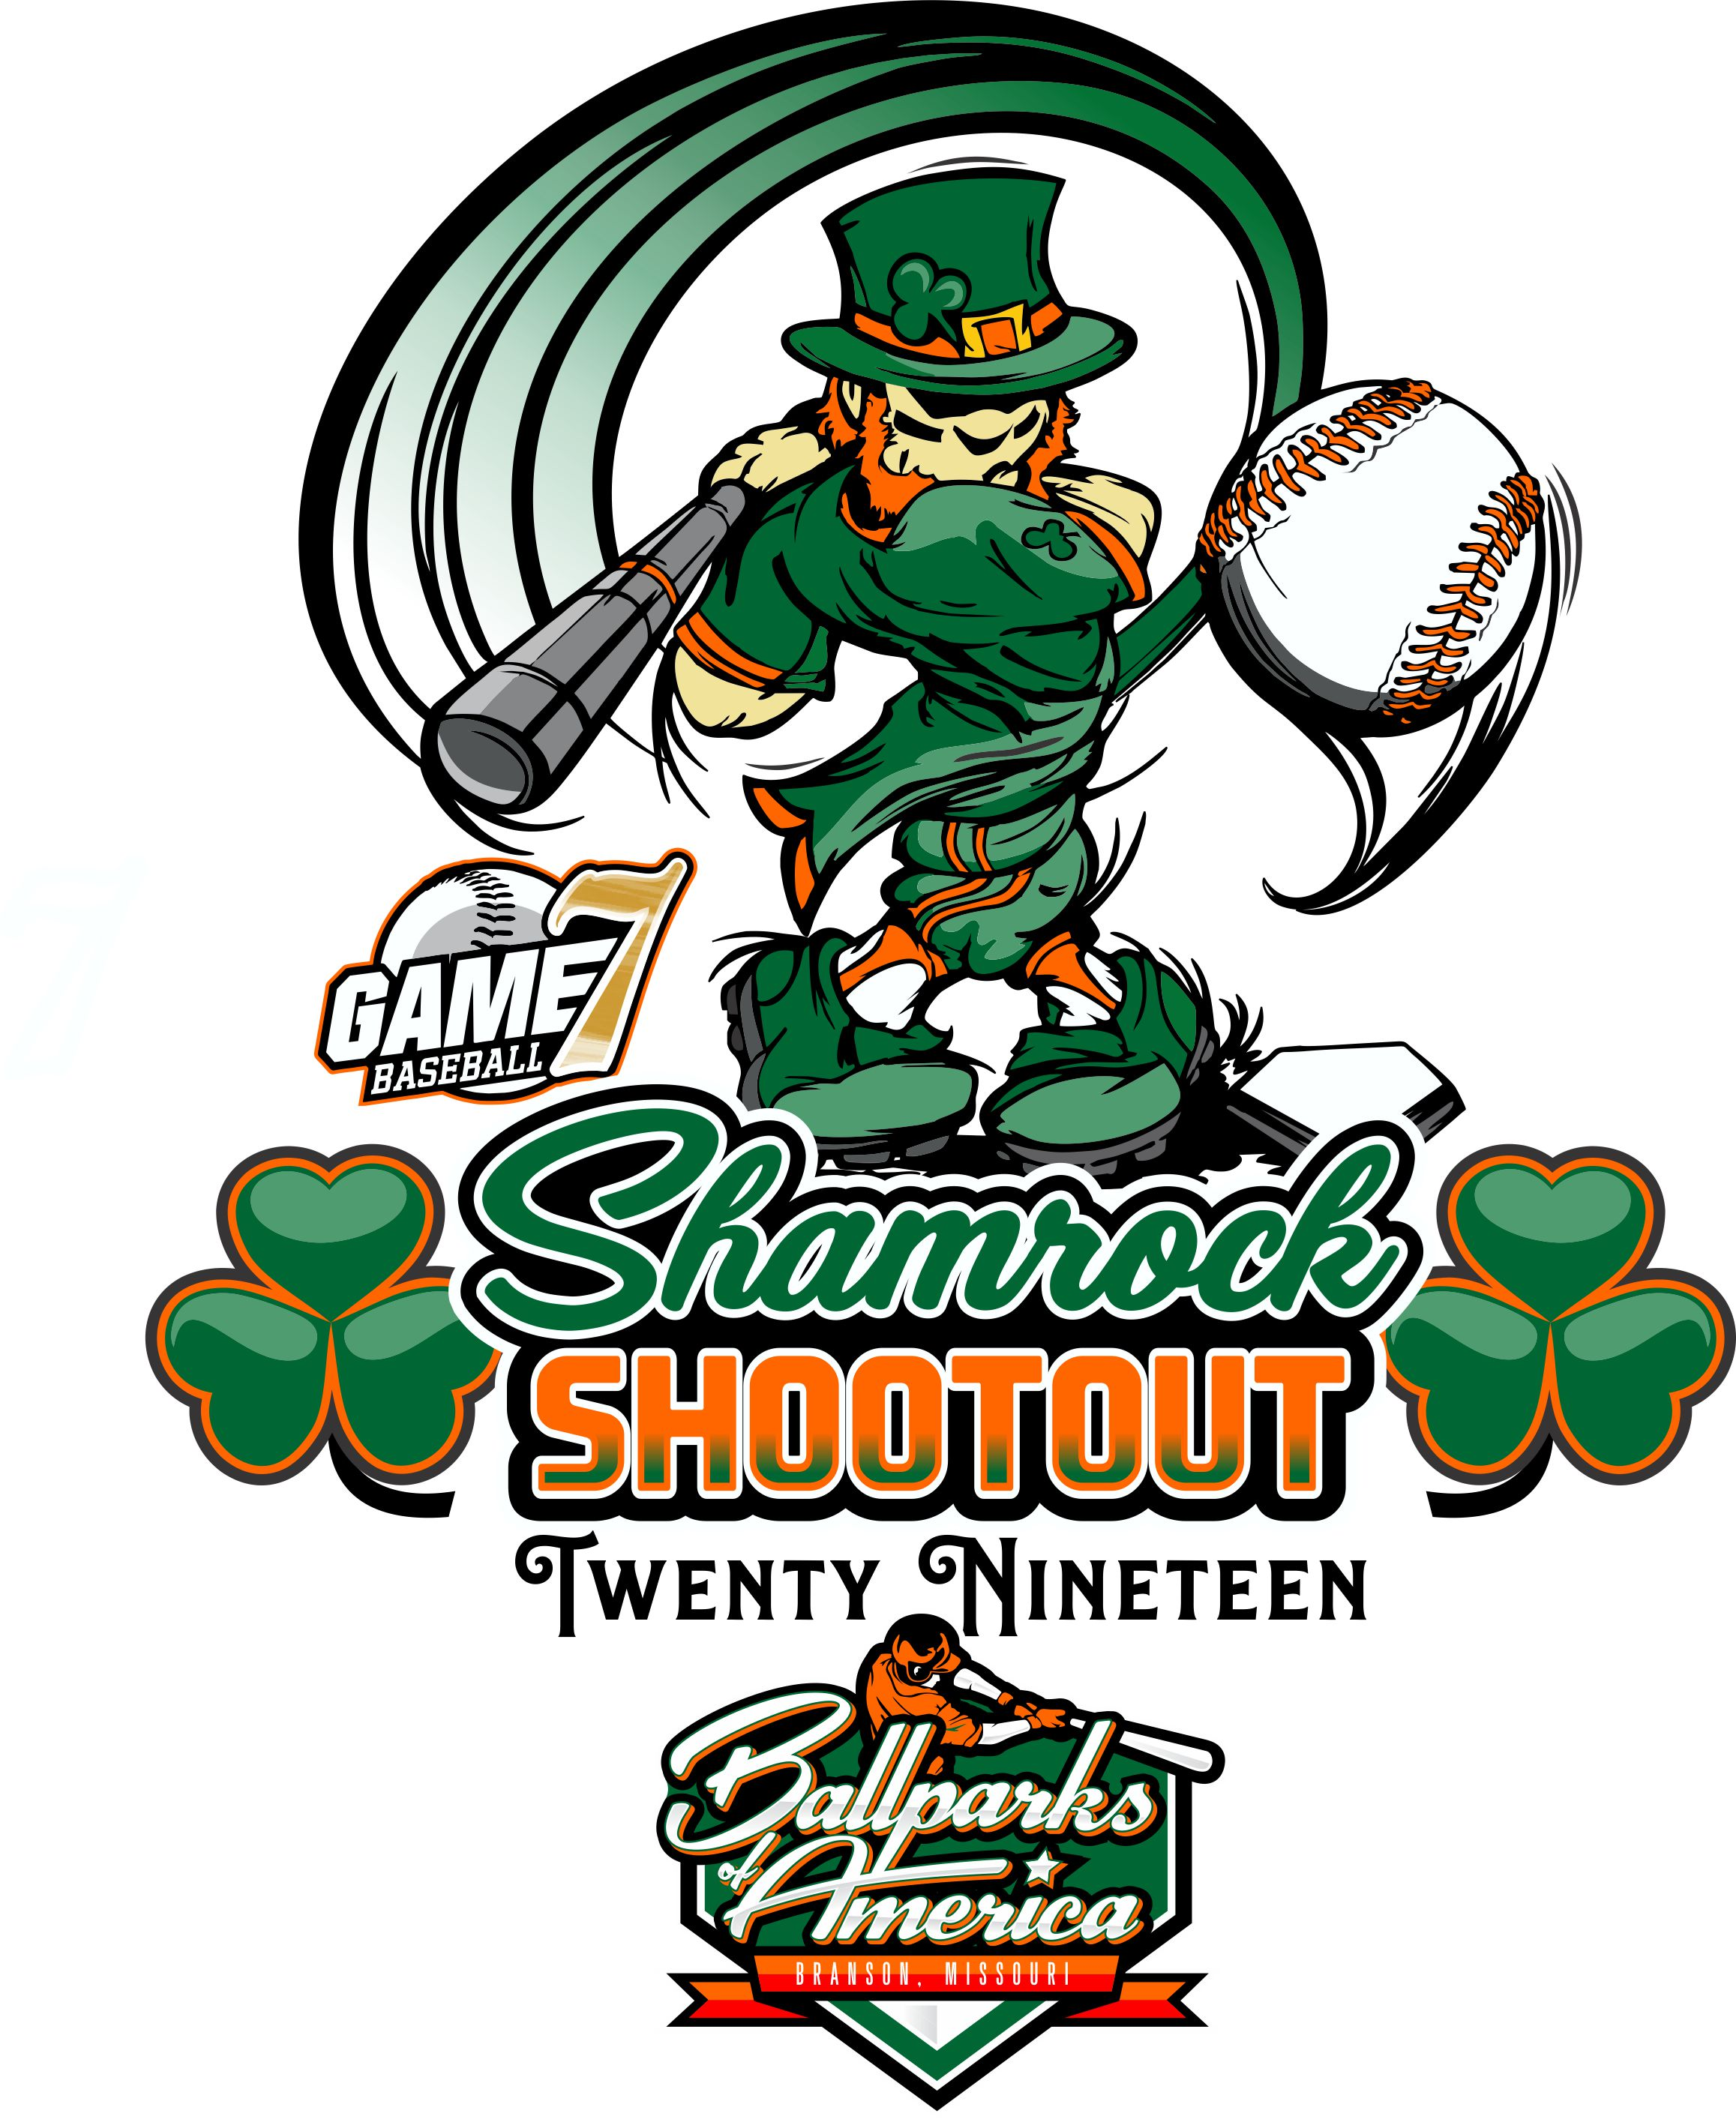 Shamrock Shootout Logo